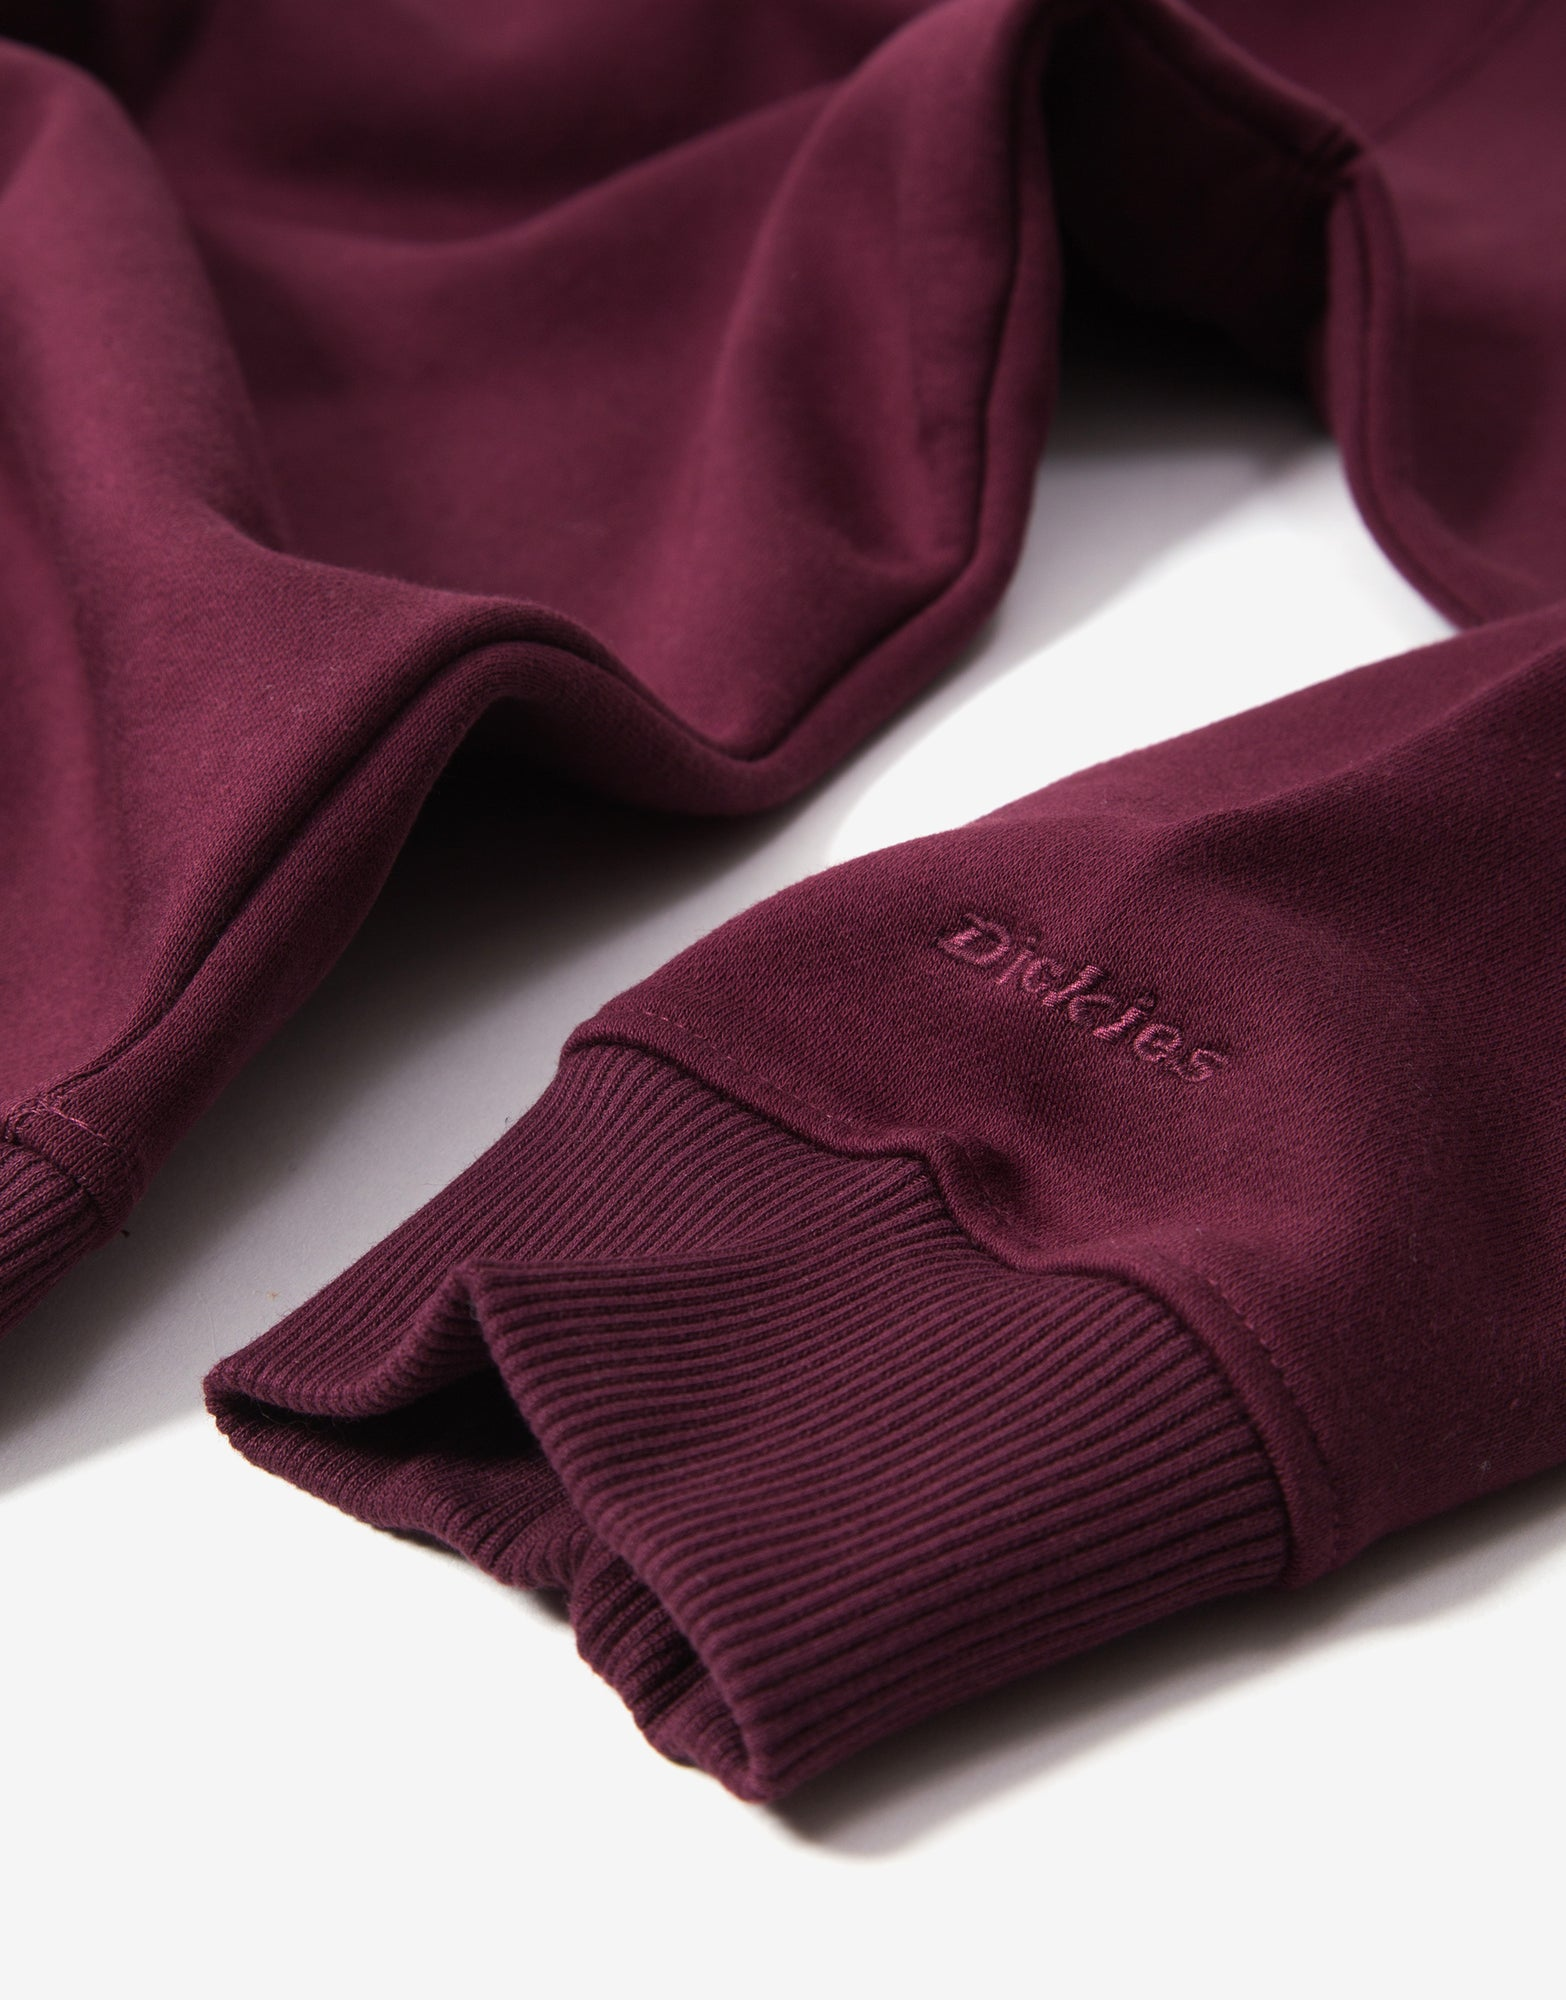 Dickies New Jersey Sweatshirt - Maroon